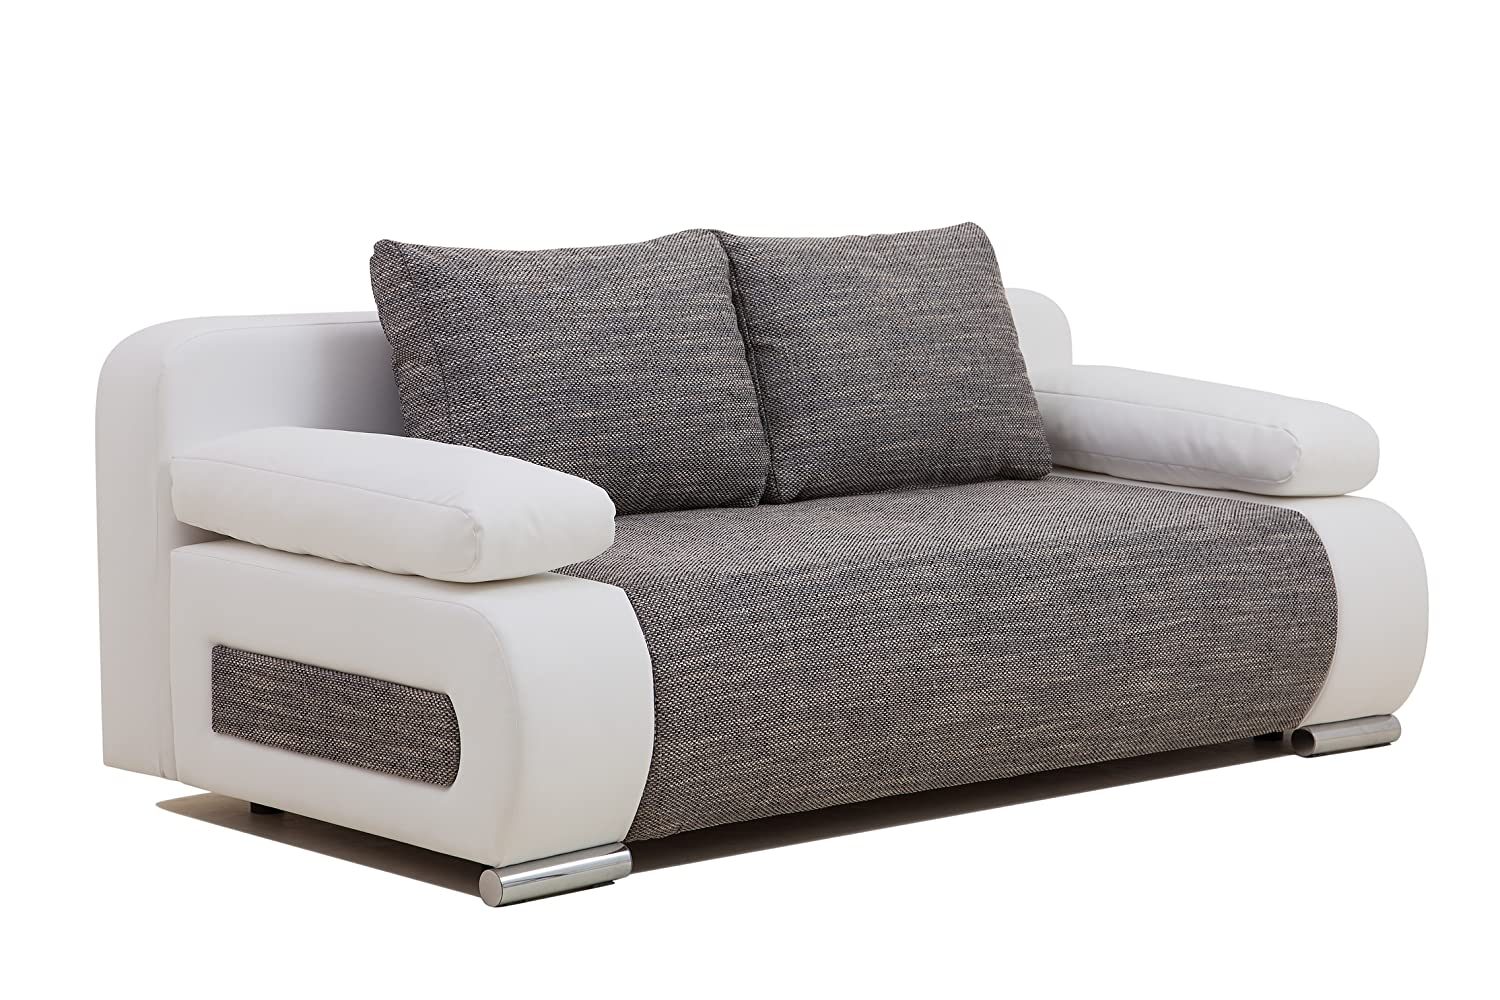 Schlafsofa jugendzimmer ikea  Sofas & Couches | Amazon.de